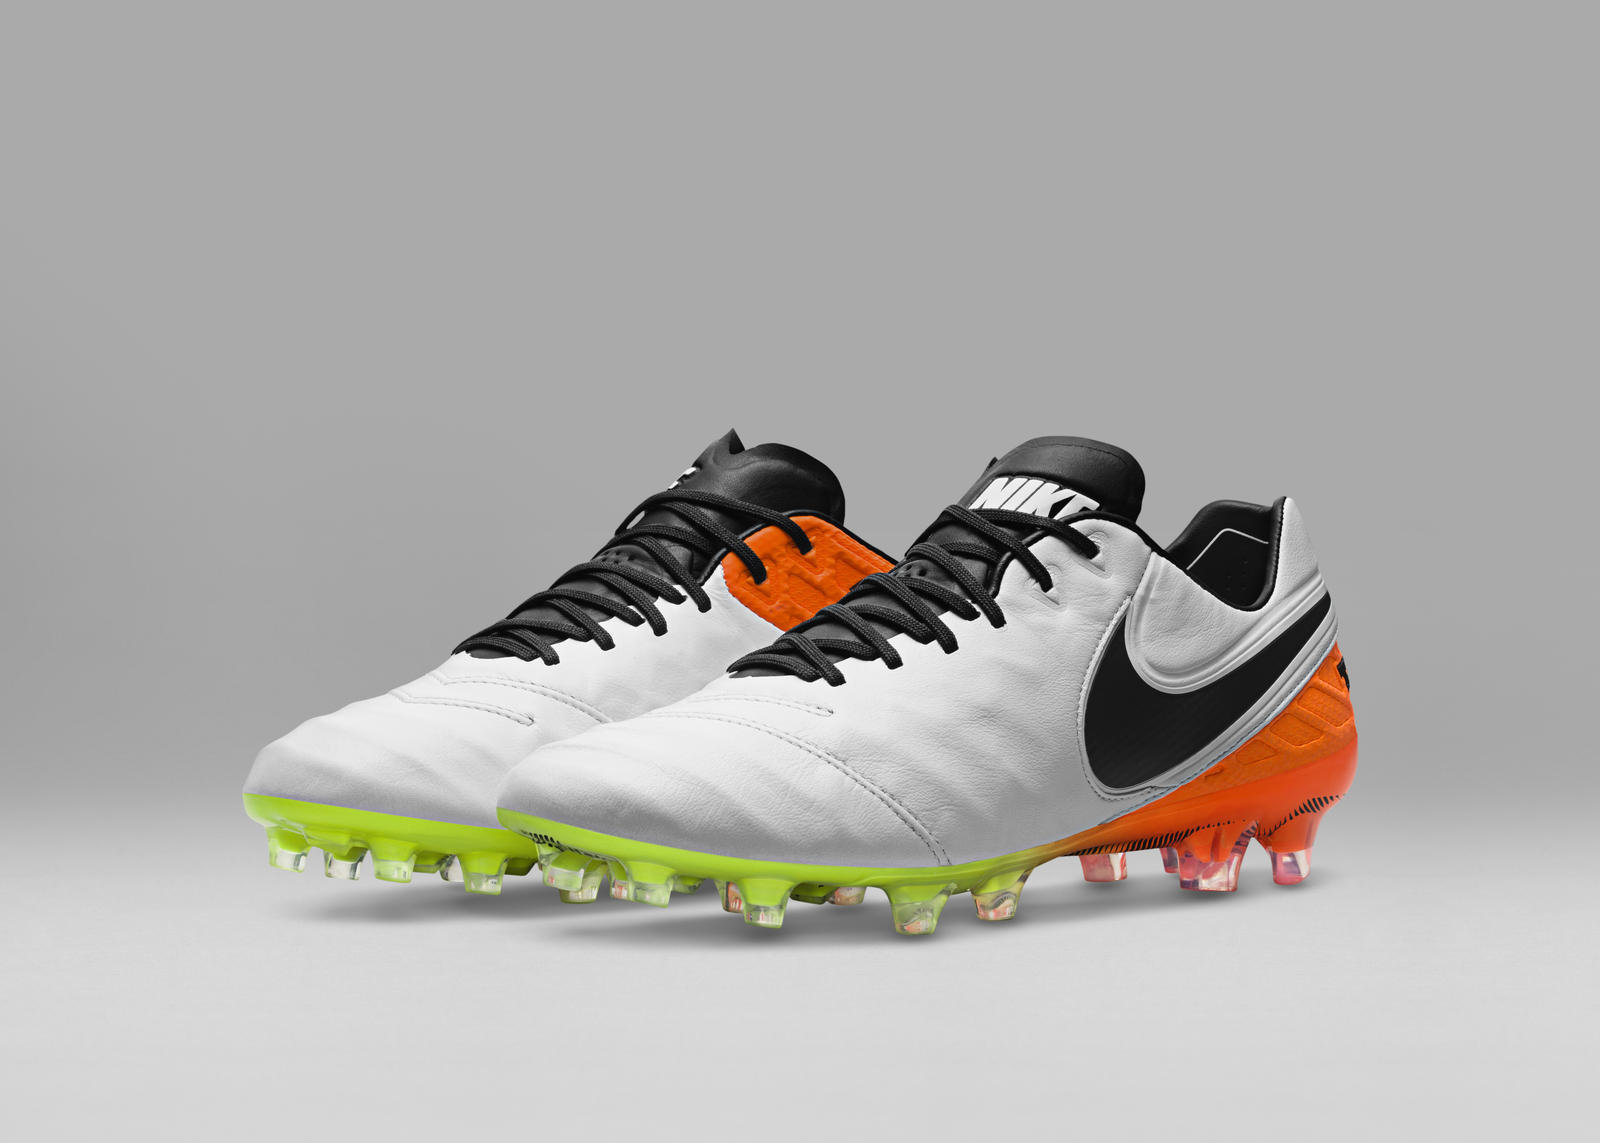 deef80500 Nike Football Men's and Women's Radiant Reveal Pack - Nike News